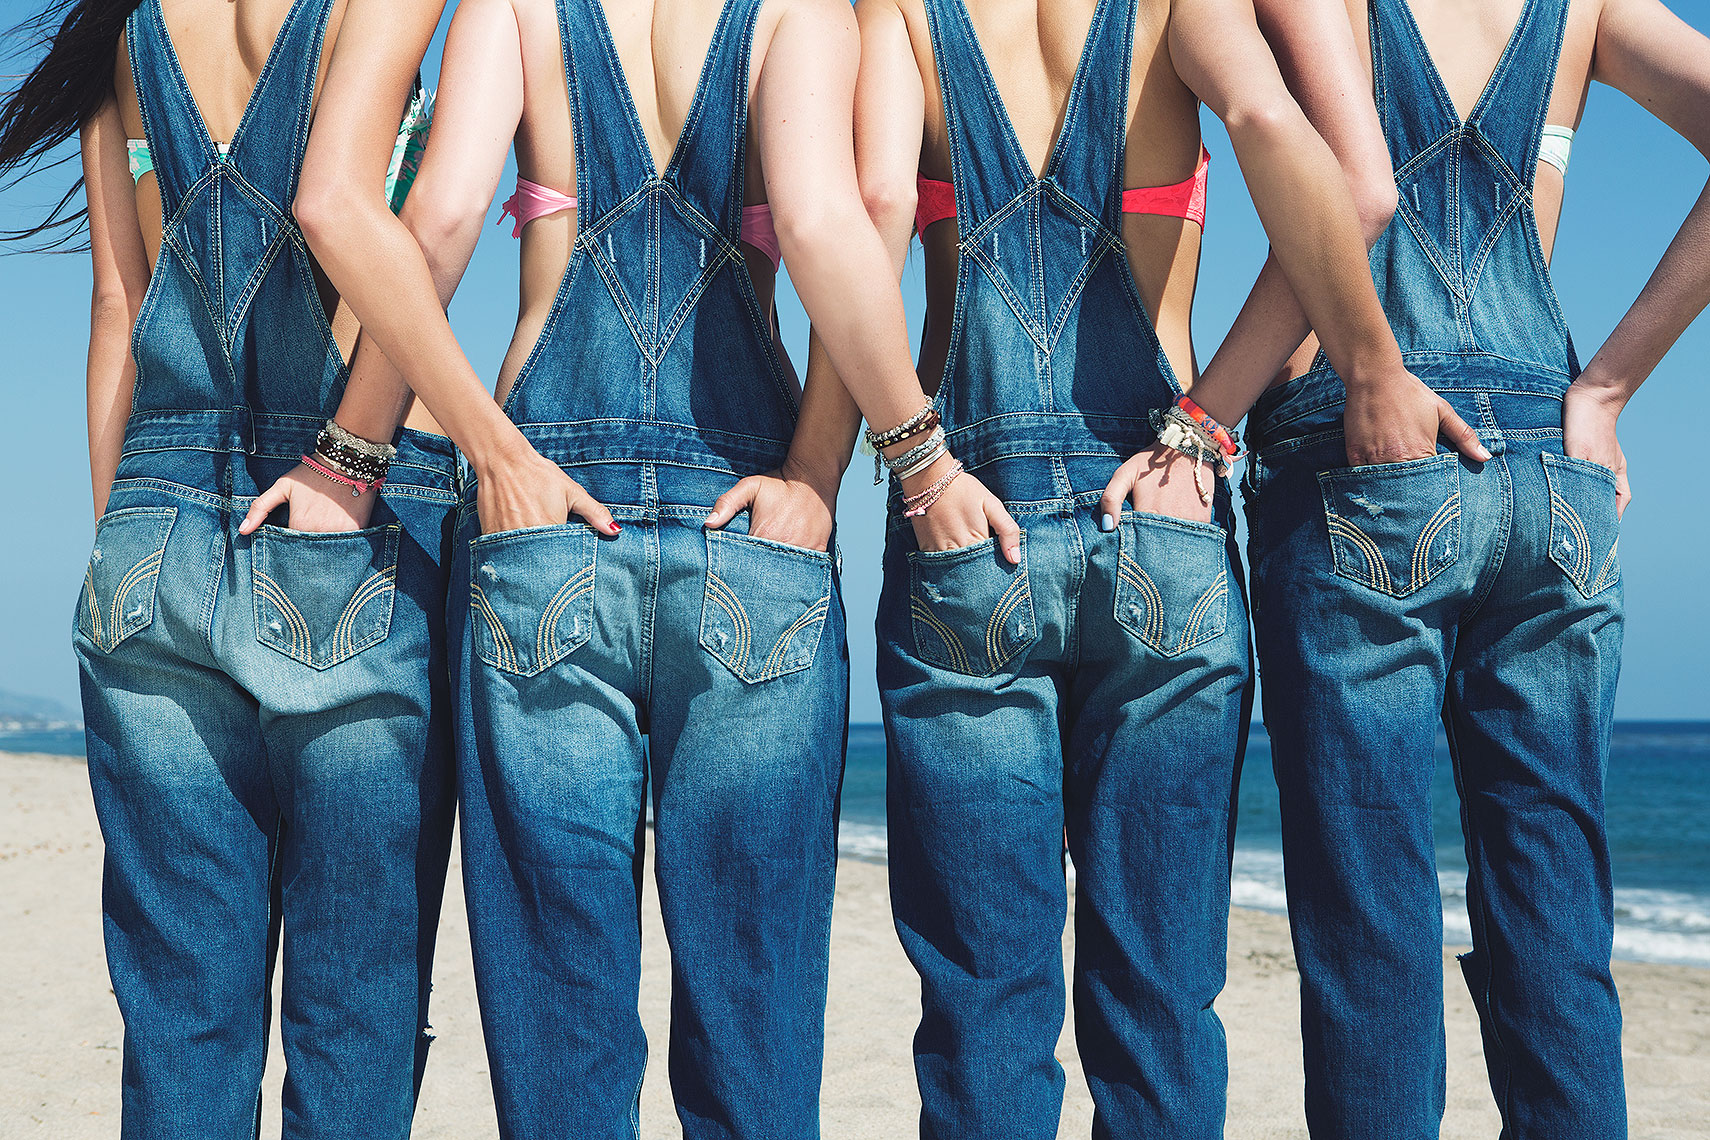 5-HOLLISTER_DENIM6